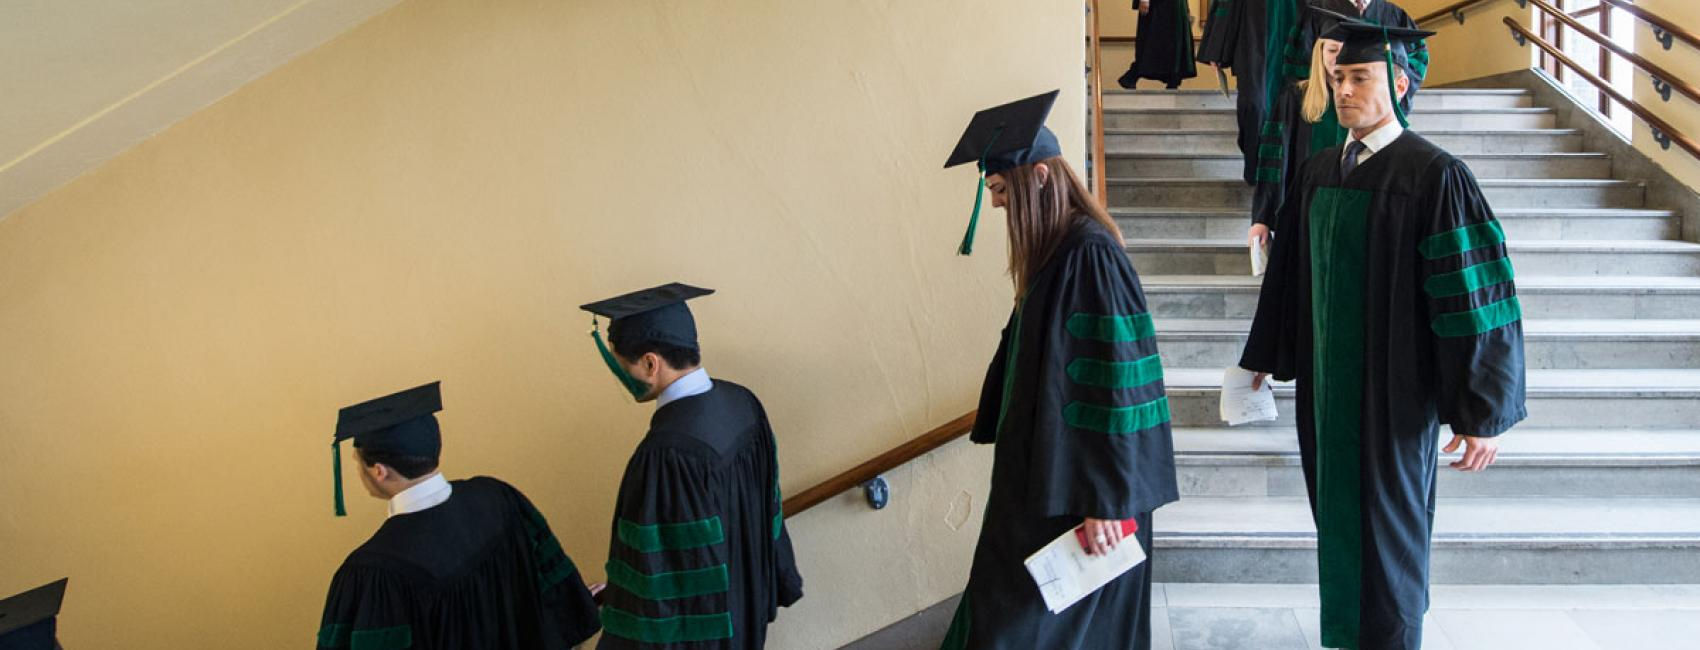 Medical students in caps and gowns walk down the hall